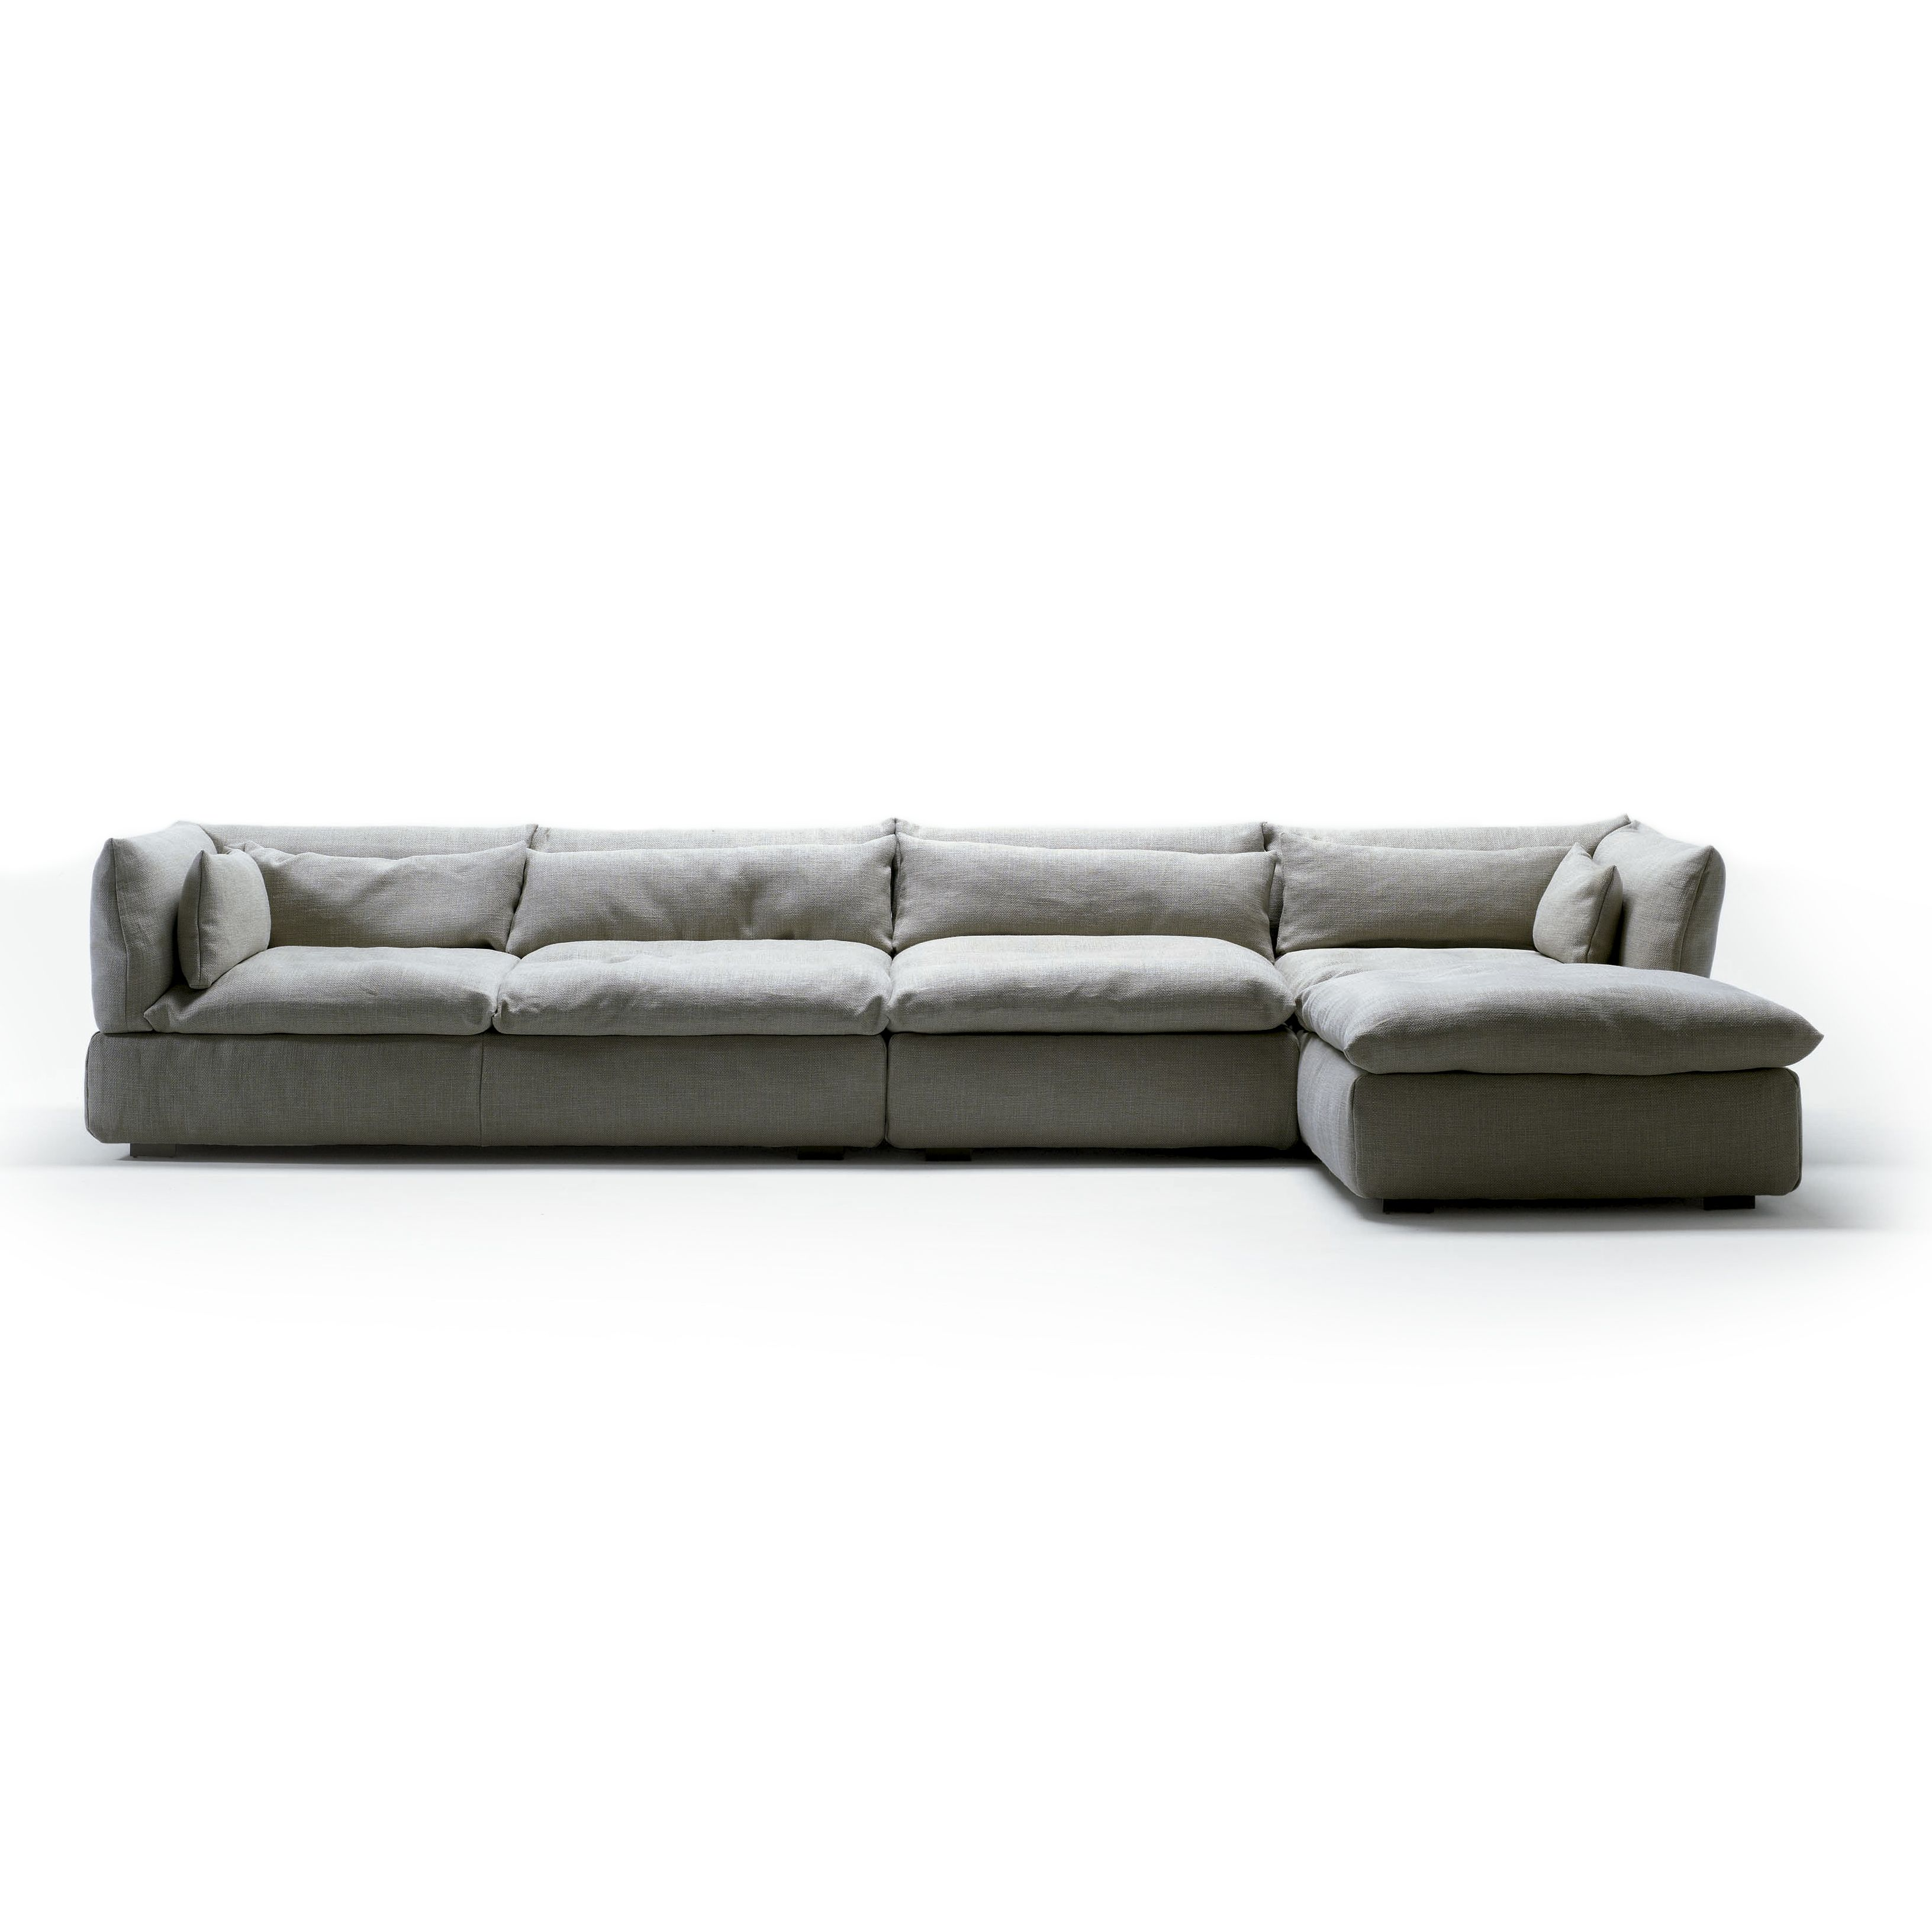 Compos Sectional, luxury Contemporary Italian Living Room ...